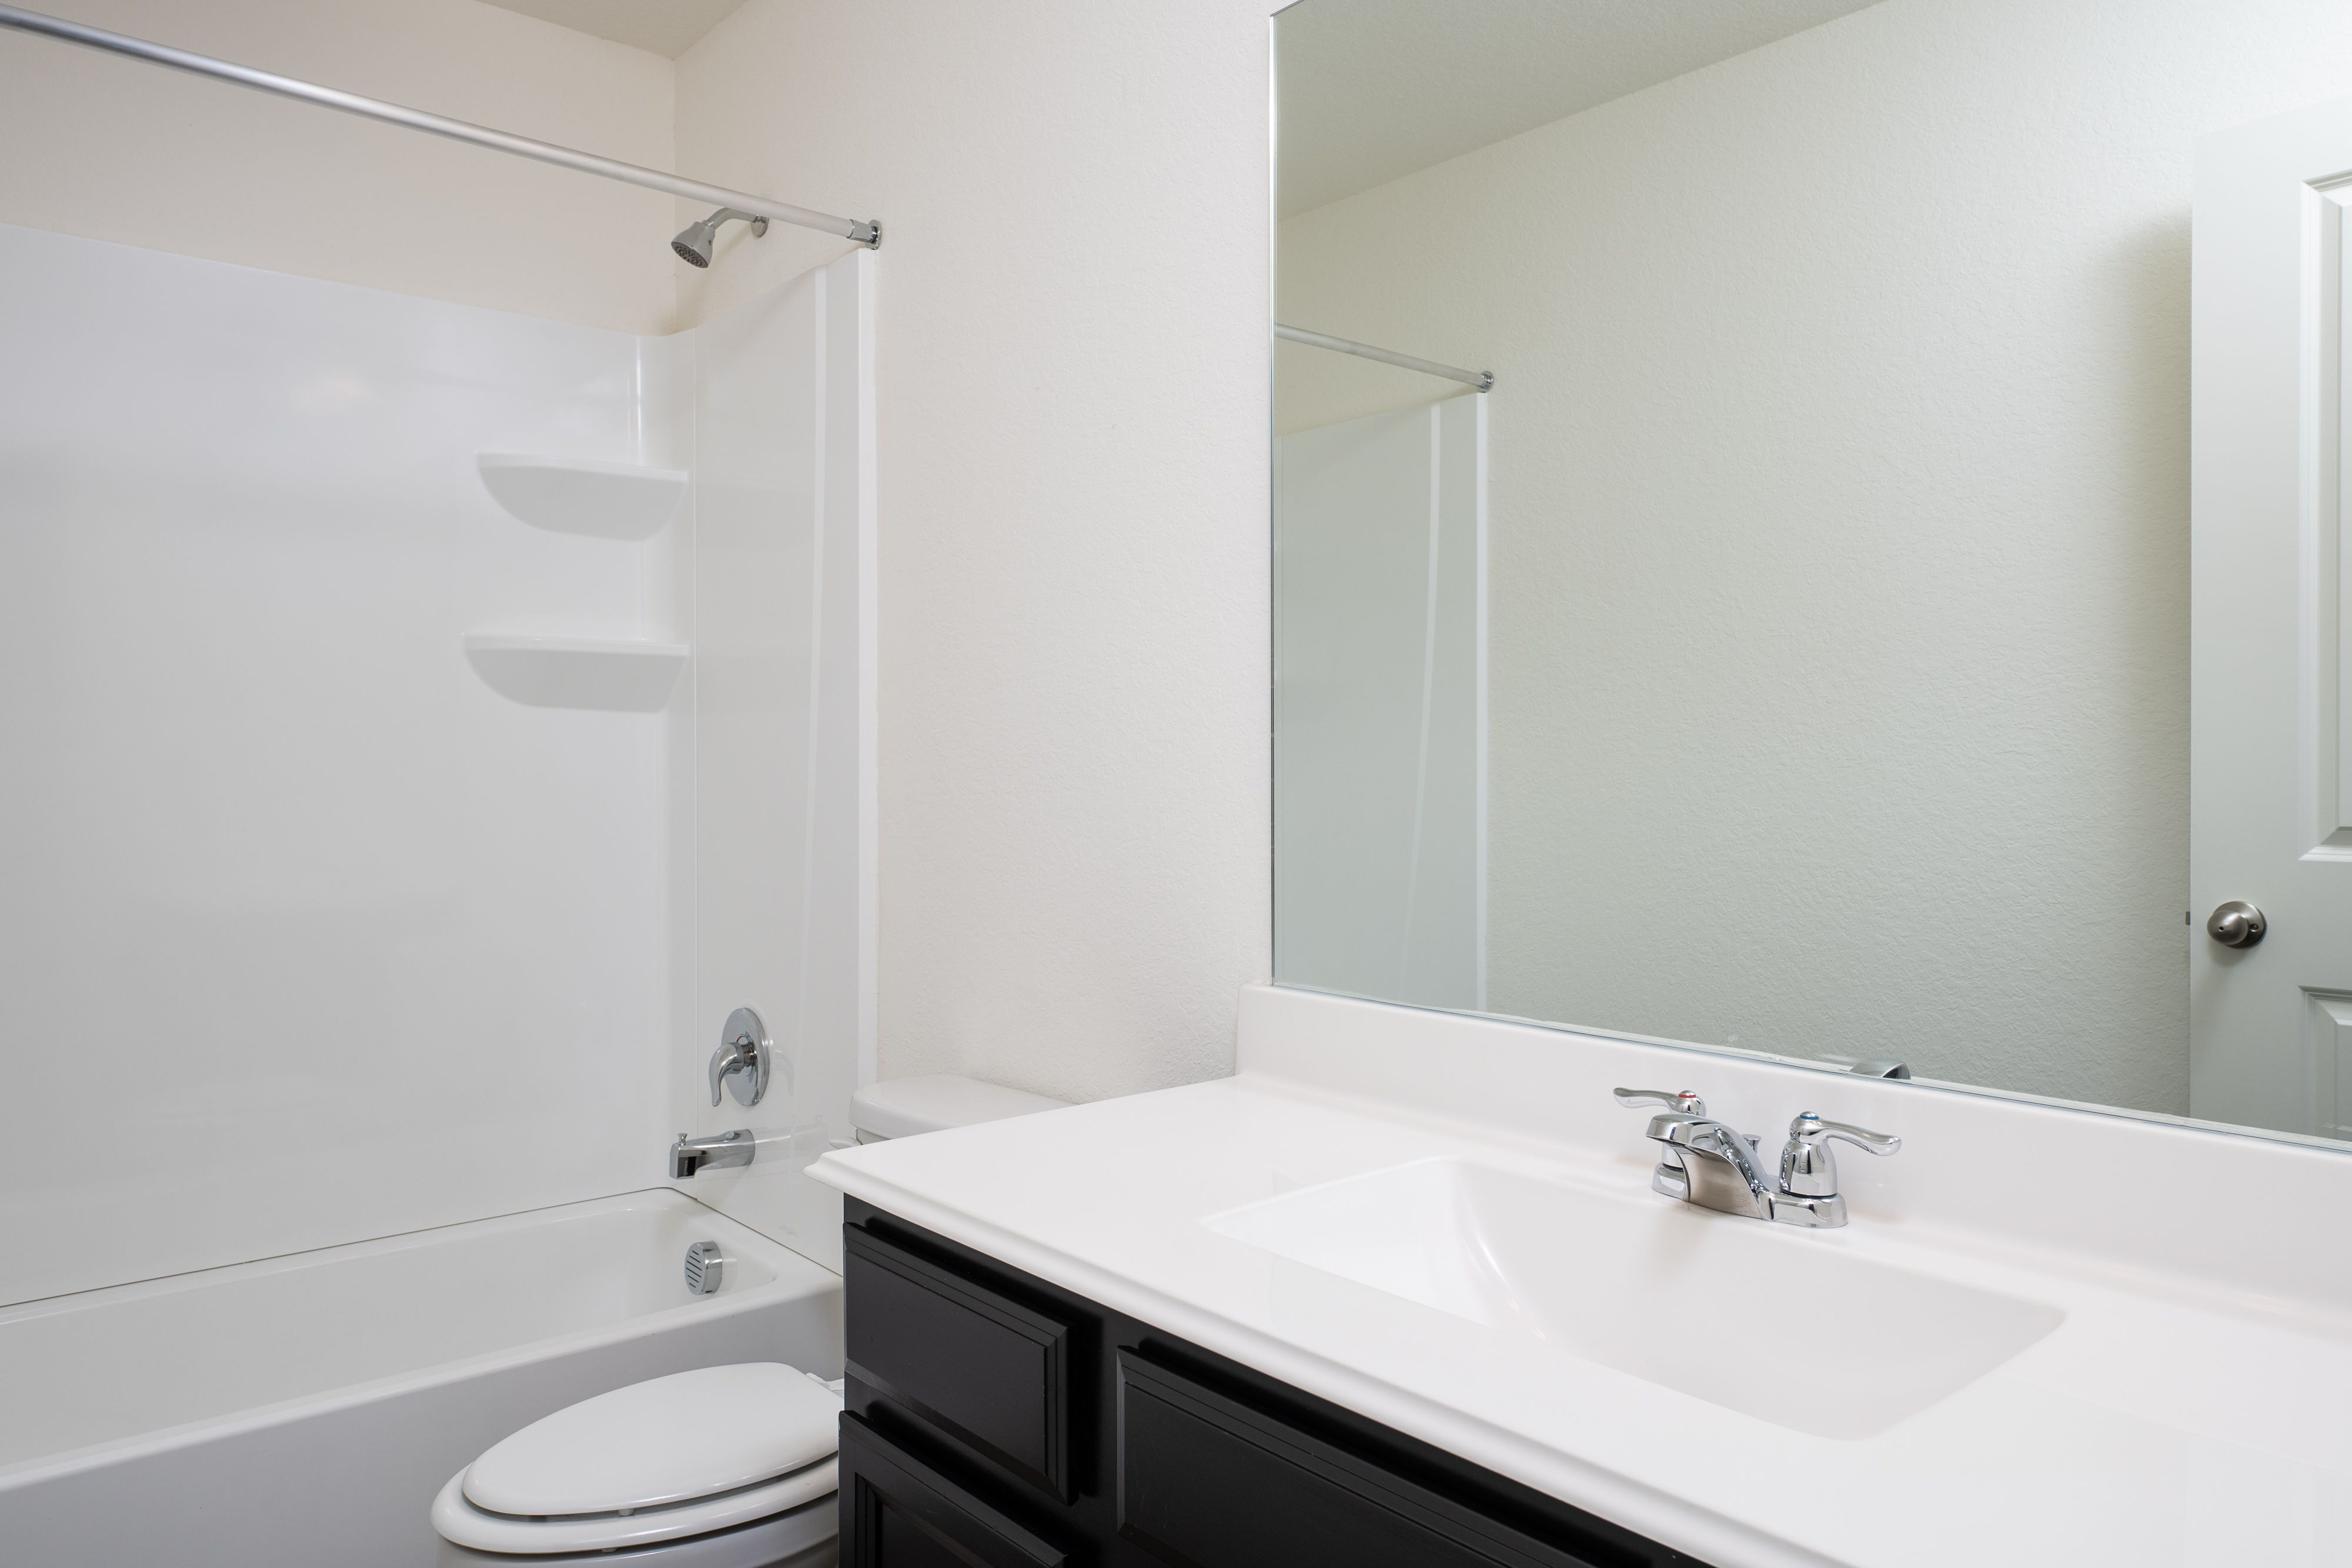 Bathroom featured in the Voyager By Starlight Homes in Austin, TX